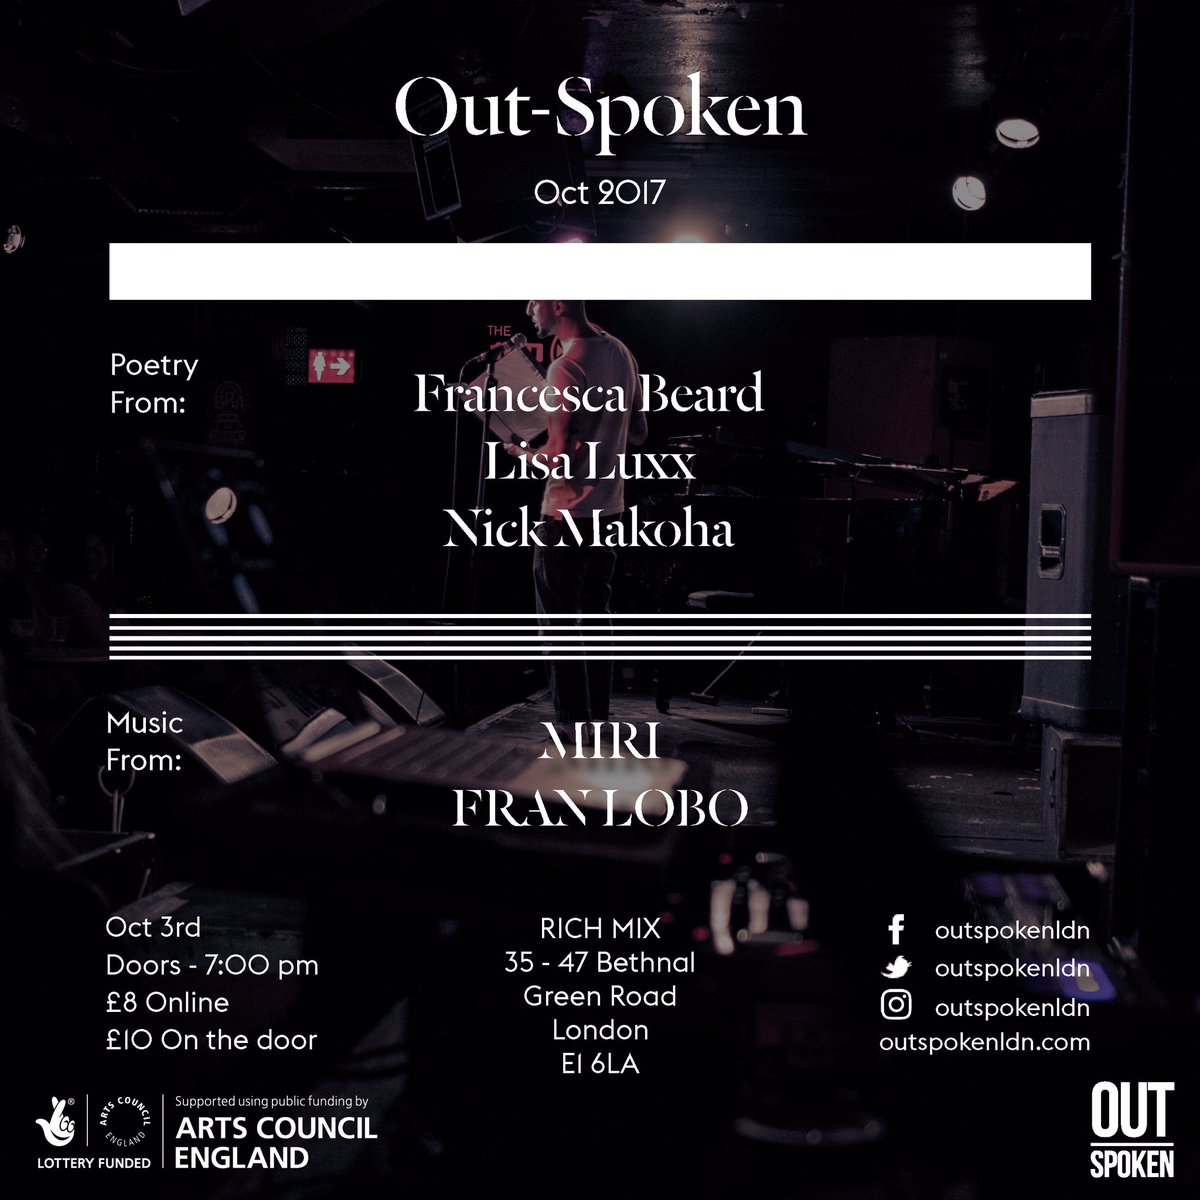 test Twitter Media - RT @OutSpokenLDN: Here's the lineup for next month's show @RichMixLondon. Grab a ticket https://t.co/p9F8ABpT5z https://t.co/RoQorqLPrM